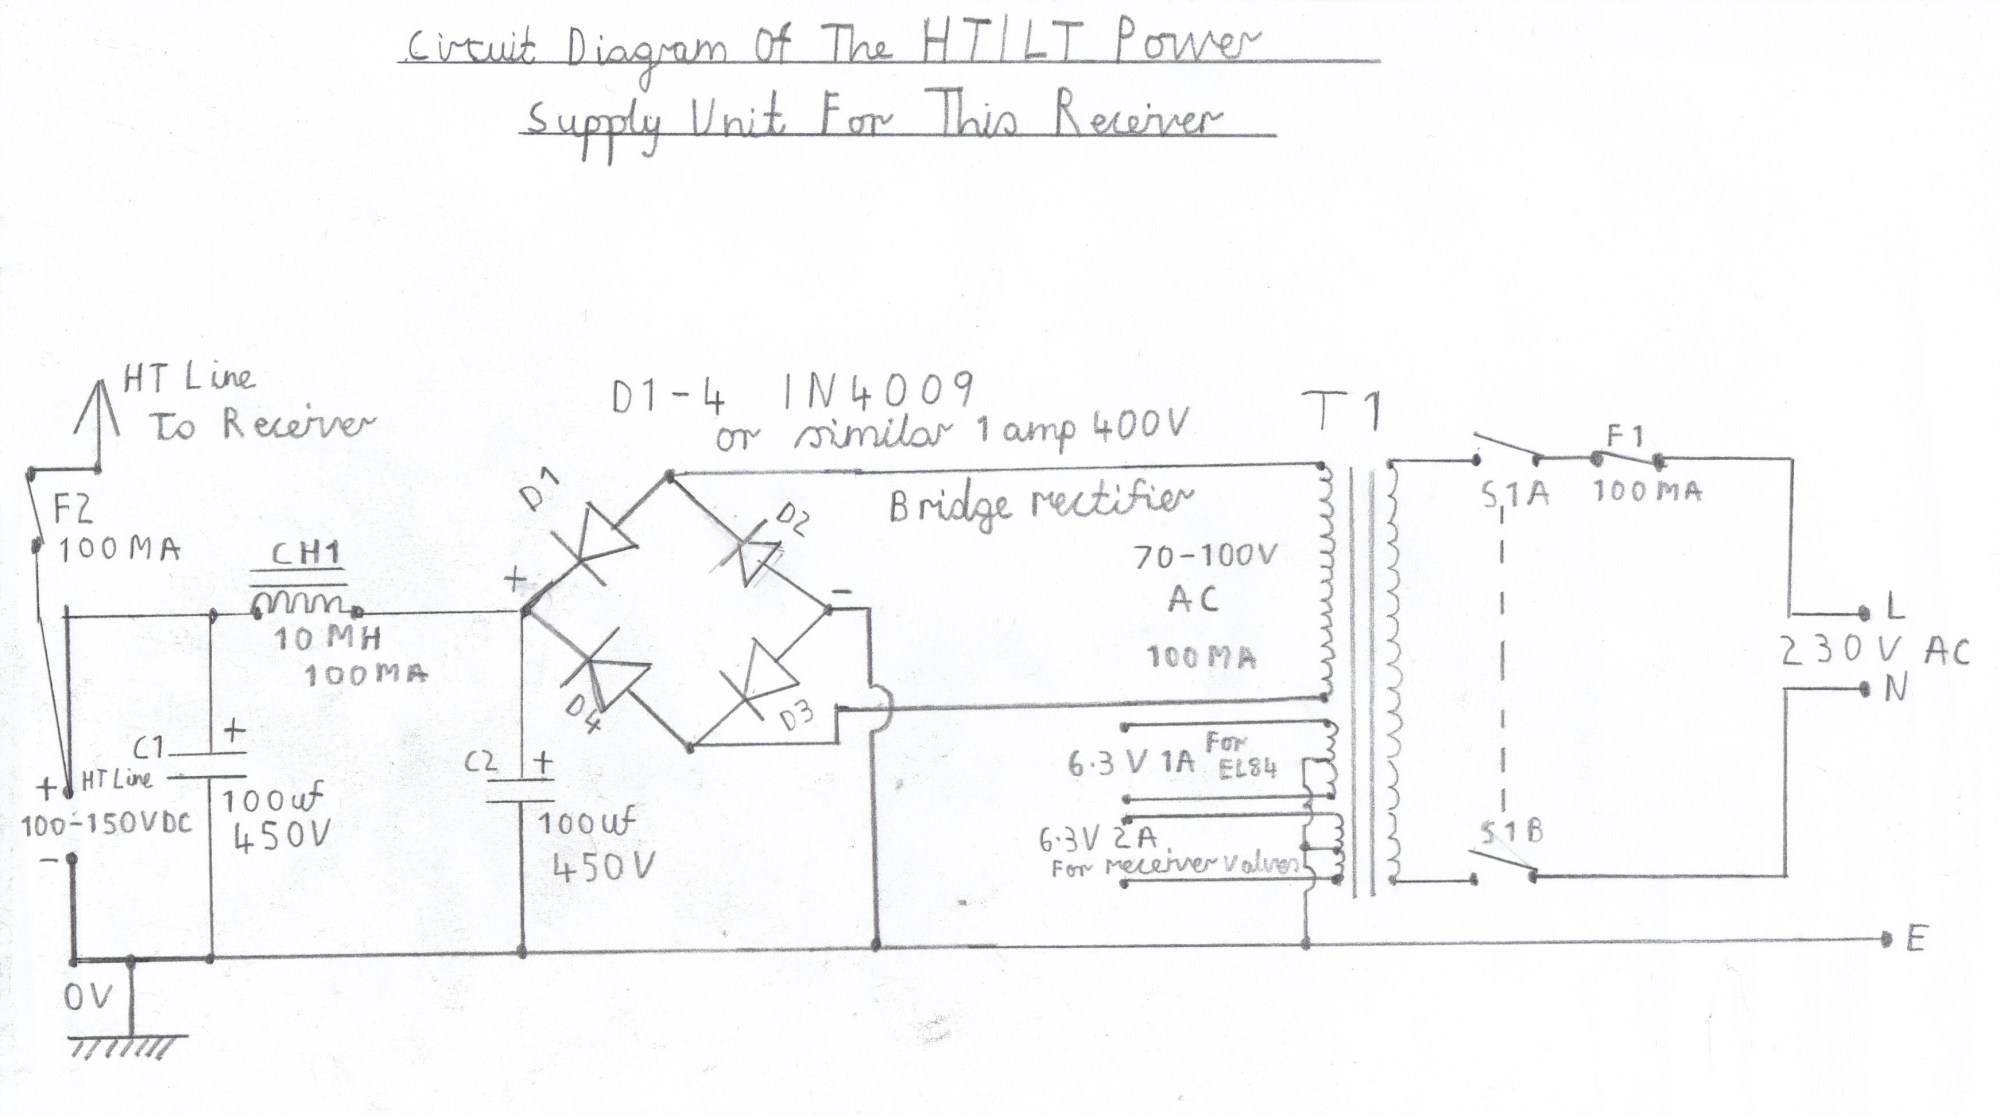 hight resolution of circuit diagram of the ht power supply circuit for the 7 valve superhet receiver